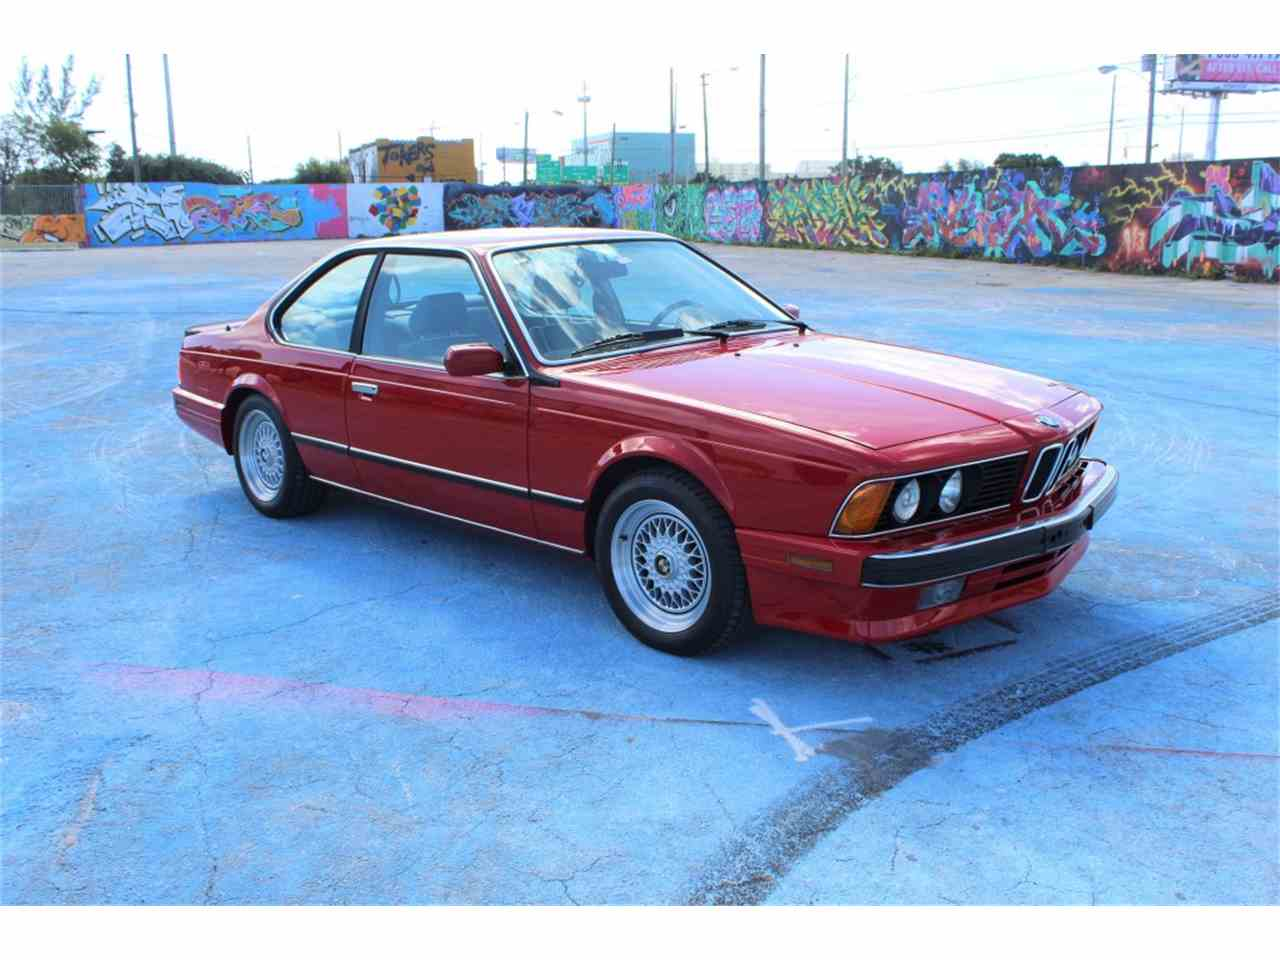 Large Picture of '88 BMW M6 located in Doral Florida - $79,990.00 Offered by Auto Source Group LLC - N95L